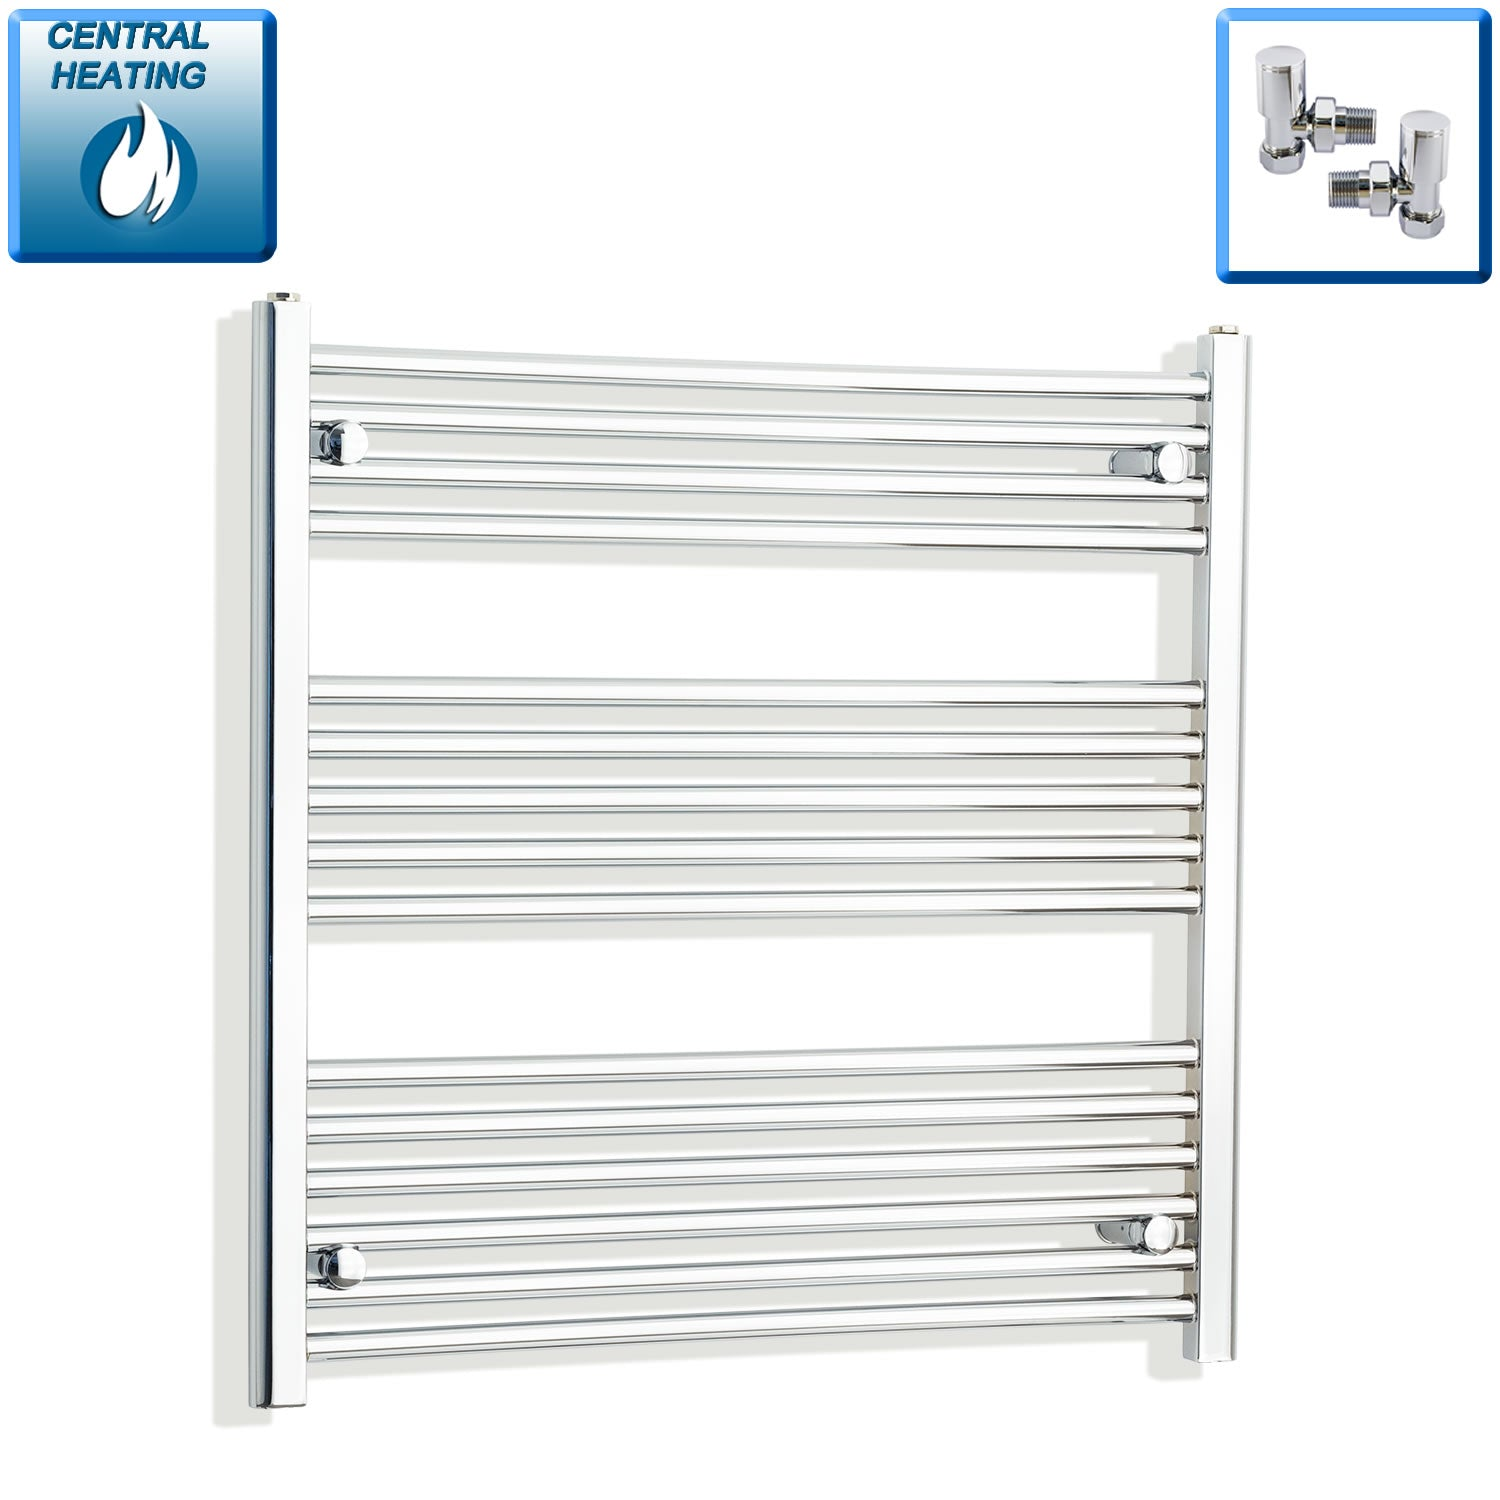 700mm Wide 800mm High Chrome Towel Rail Radiator With Angled Valve